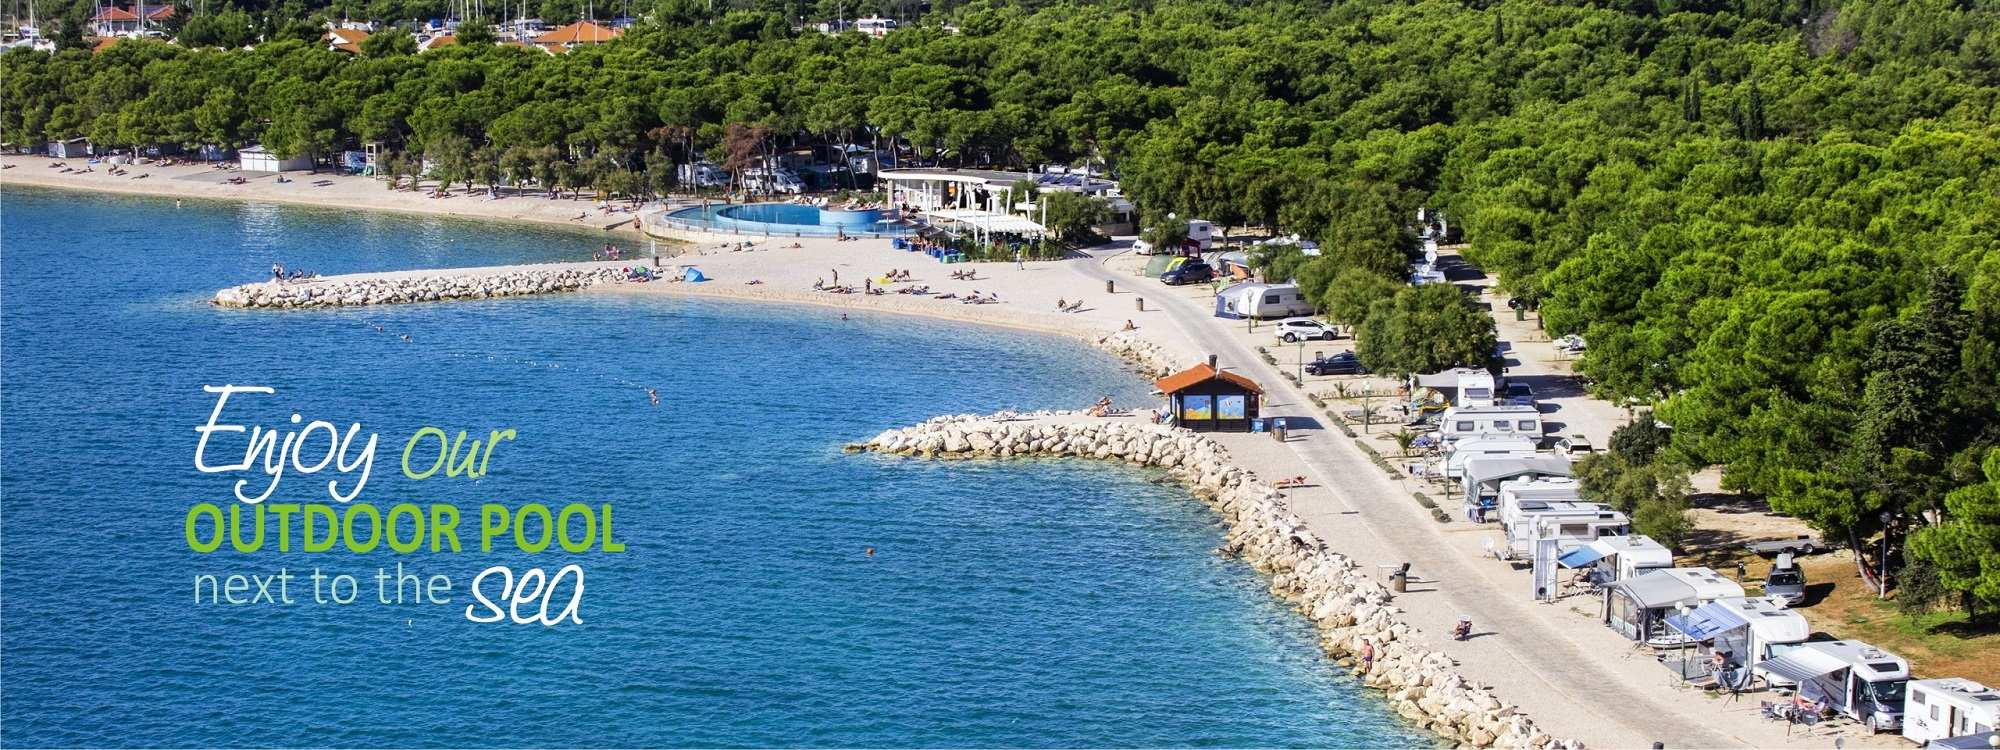 Solaris_camping_beach_resort_croatia_outdoor_pool_offer_next_to_the_sea